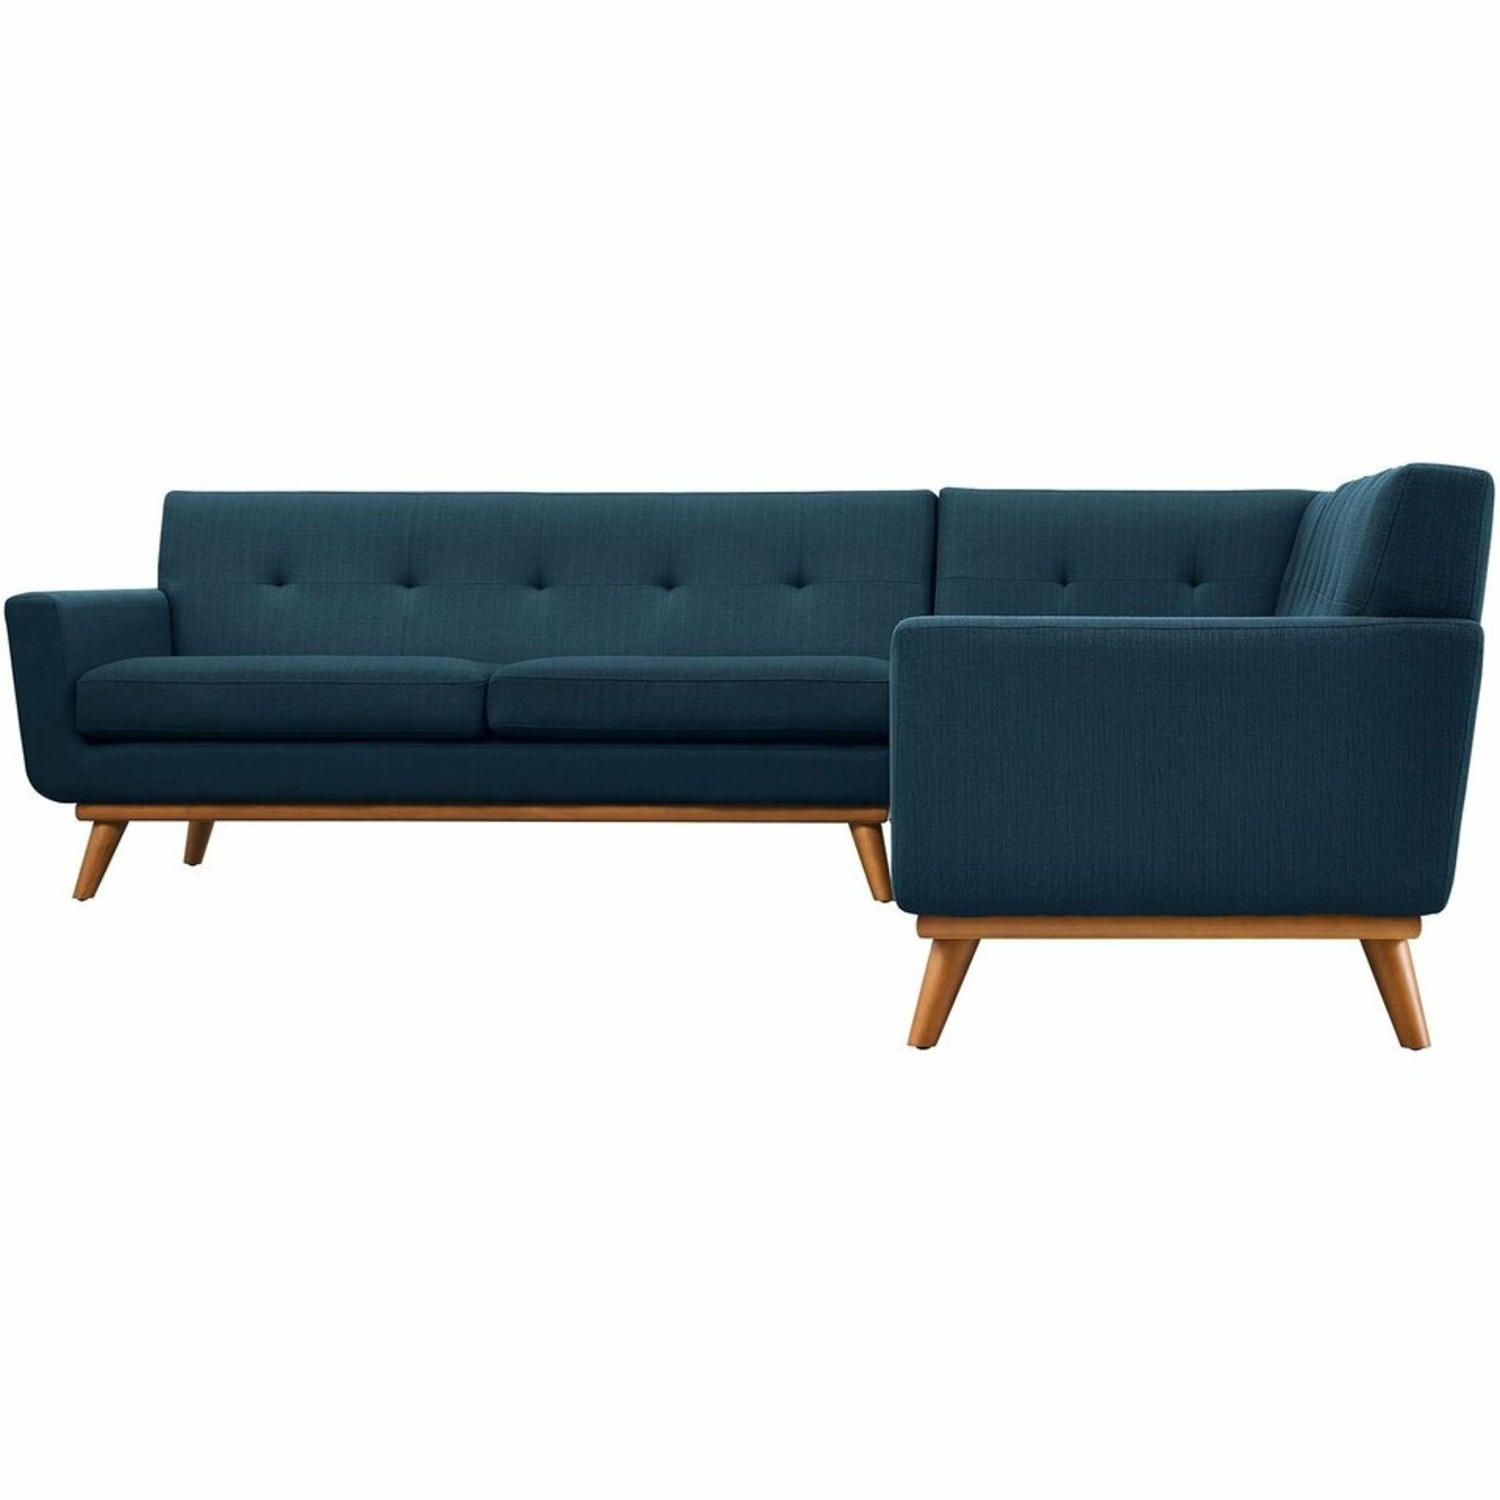 3-Piece L-Shaped Sectional In Azure Upholstery - image-1